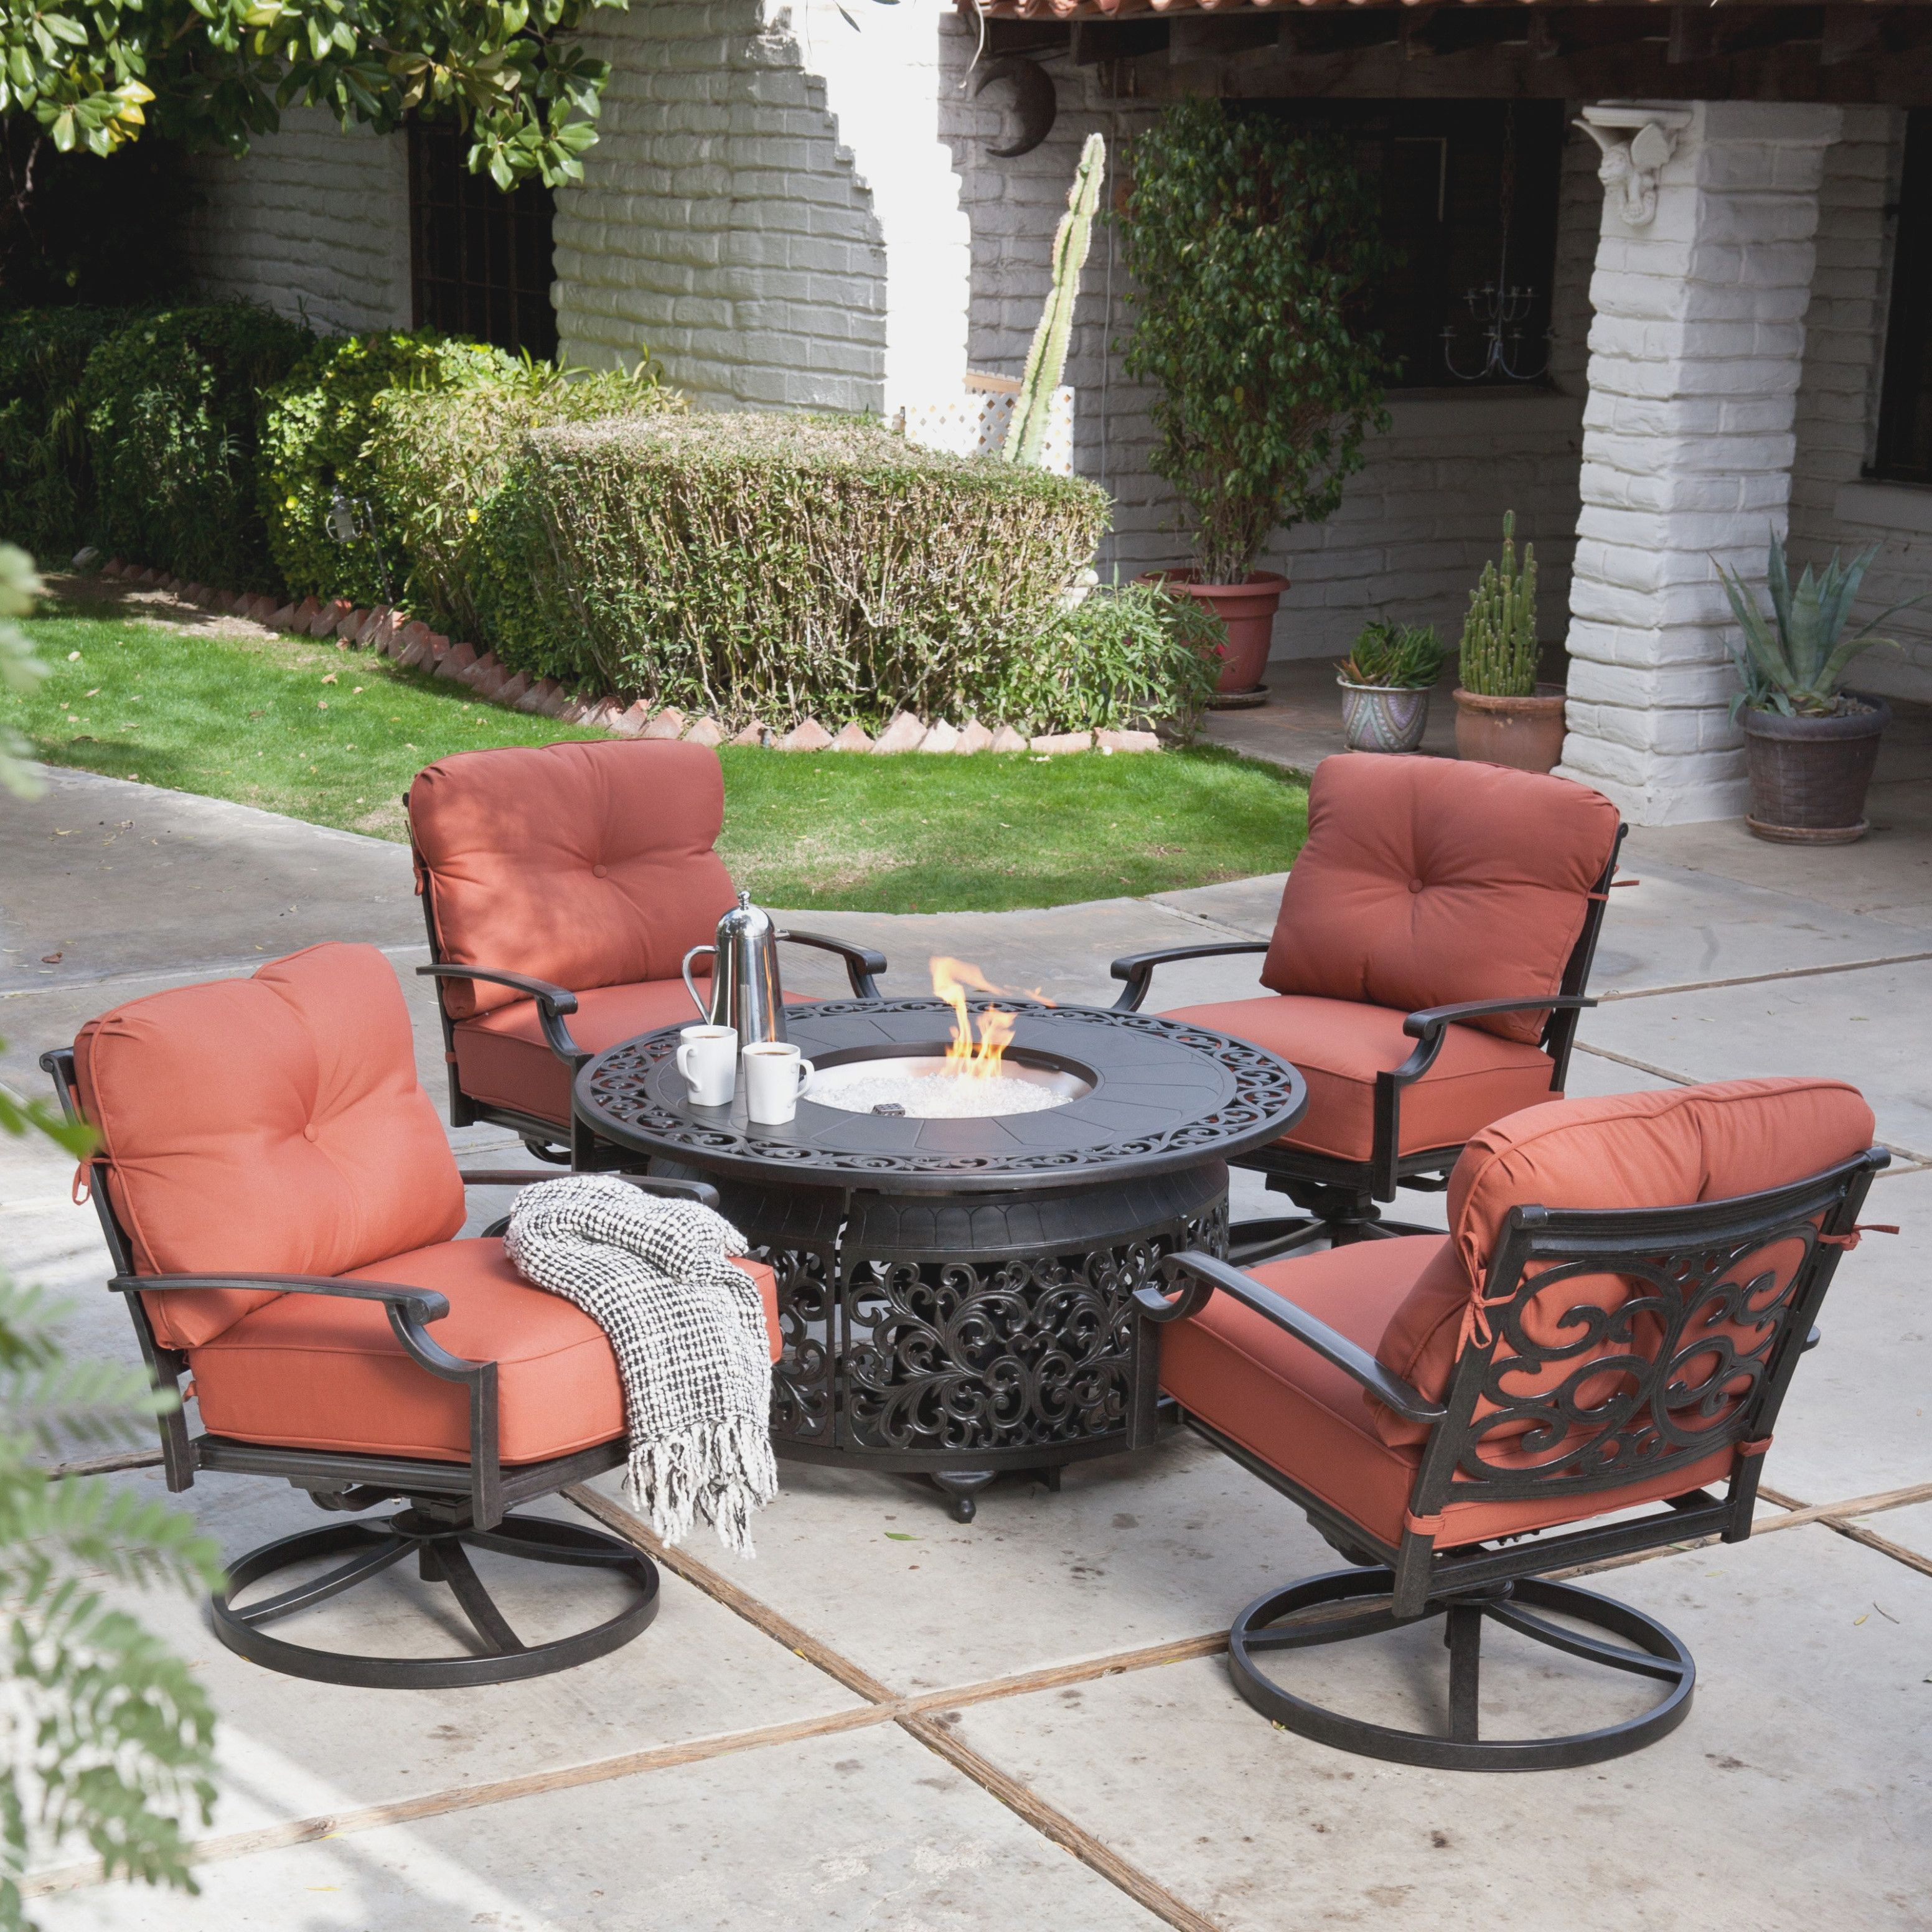 Costco Patio Furniture With Fire Pit Fire Pit Patio Set Fire